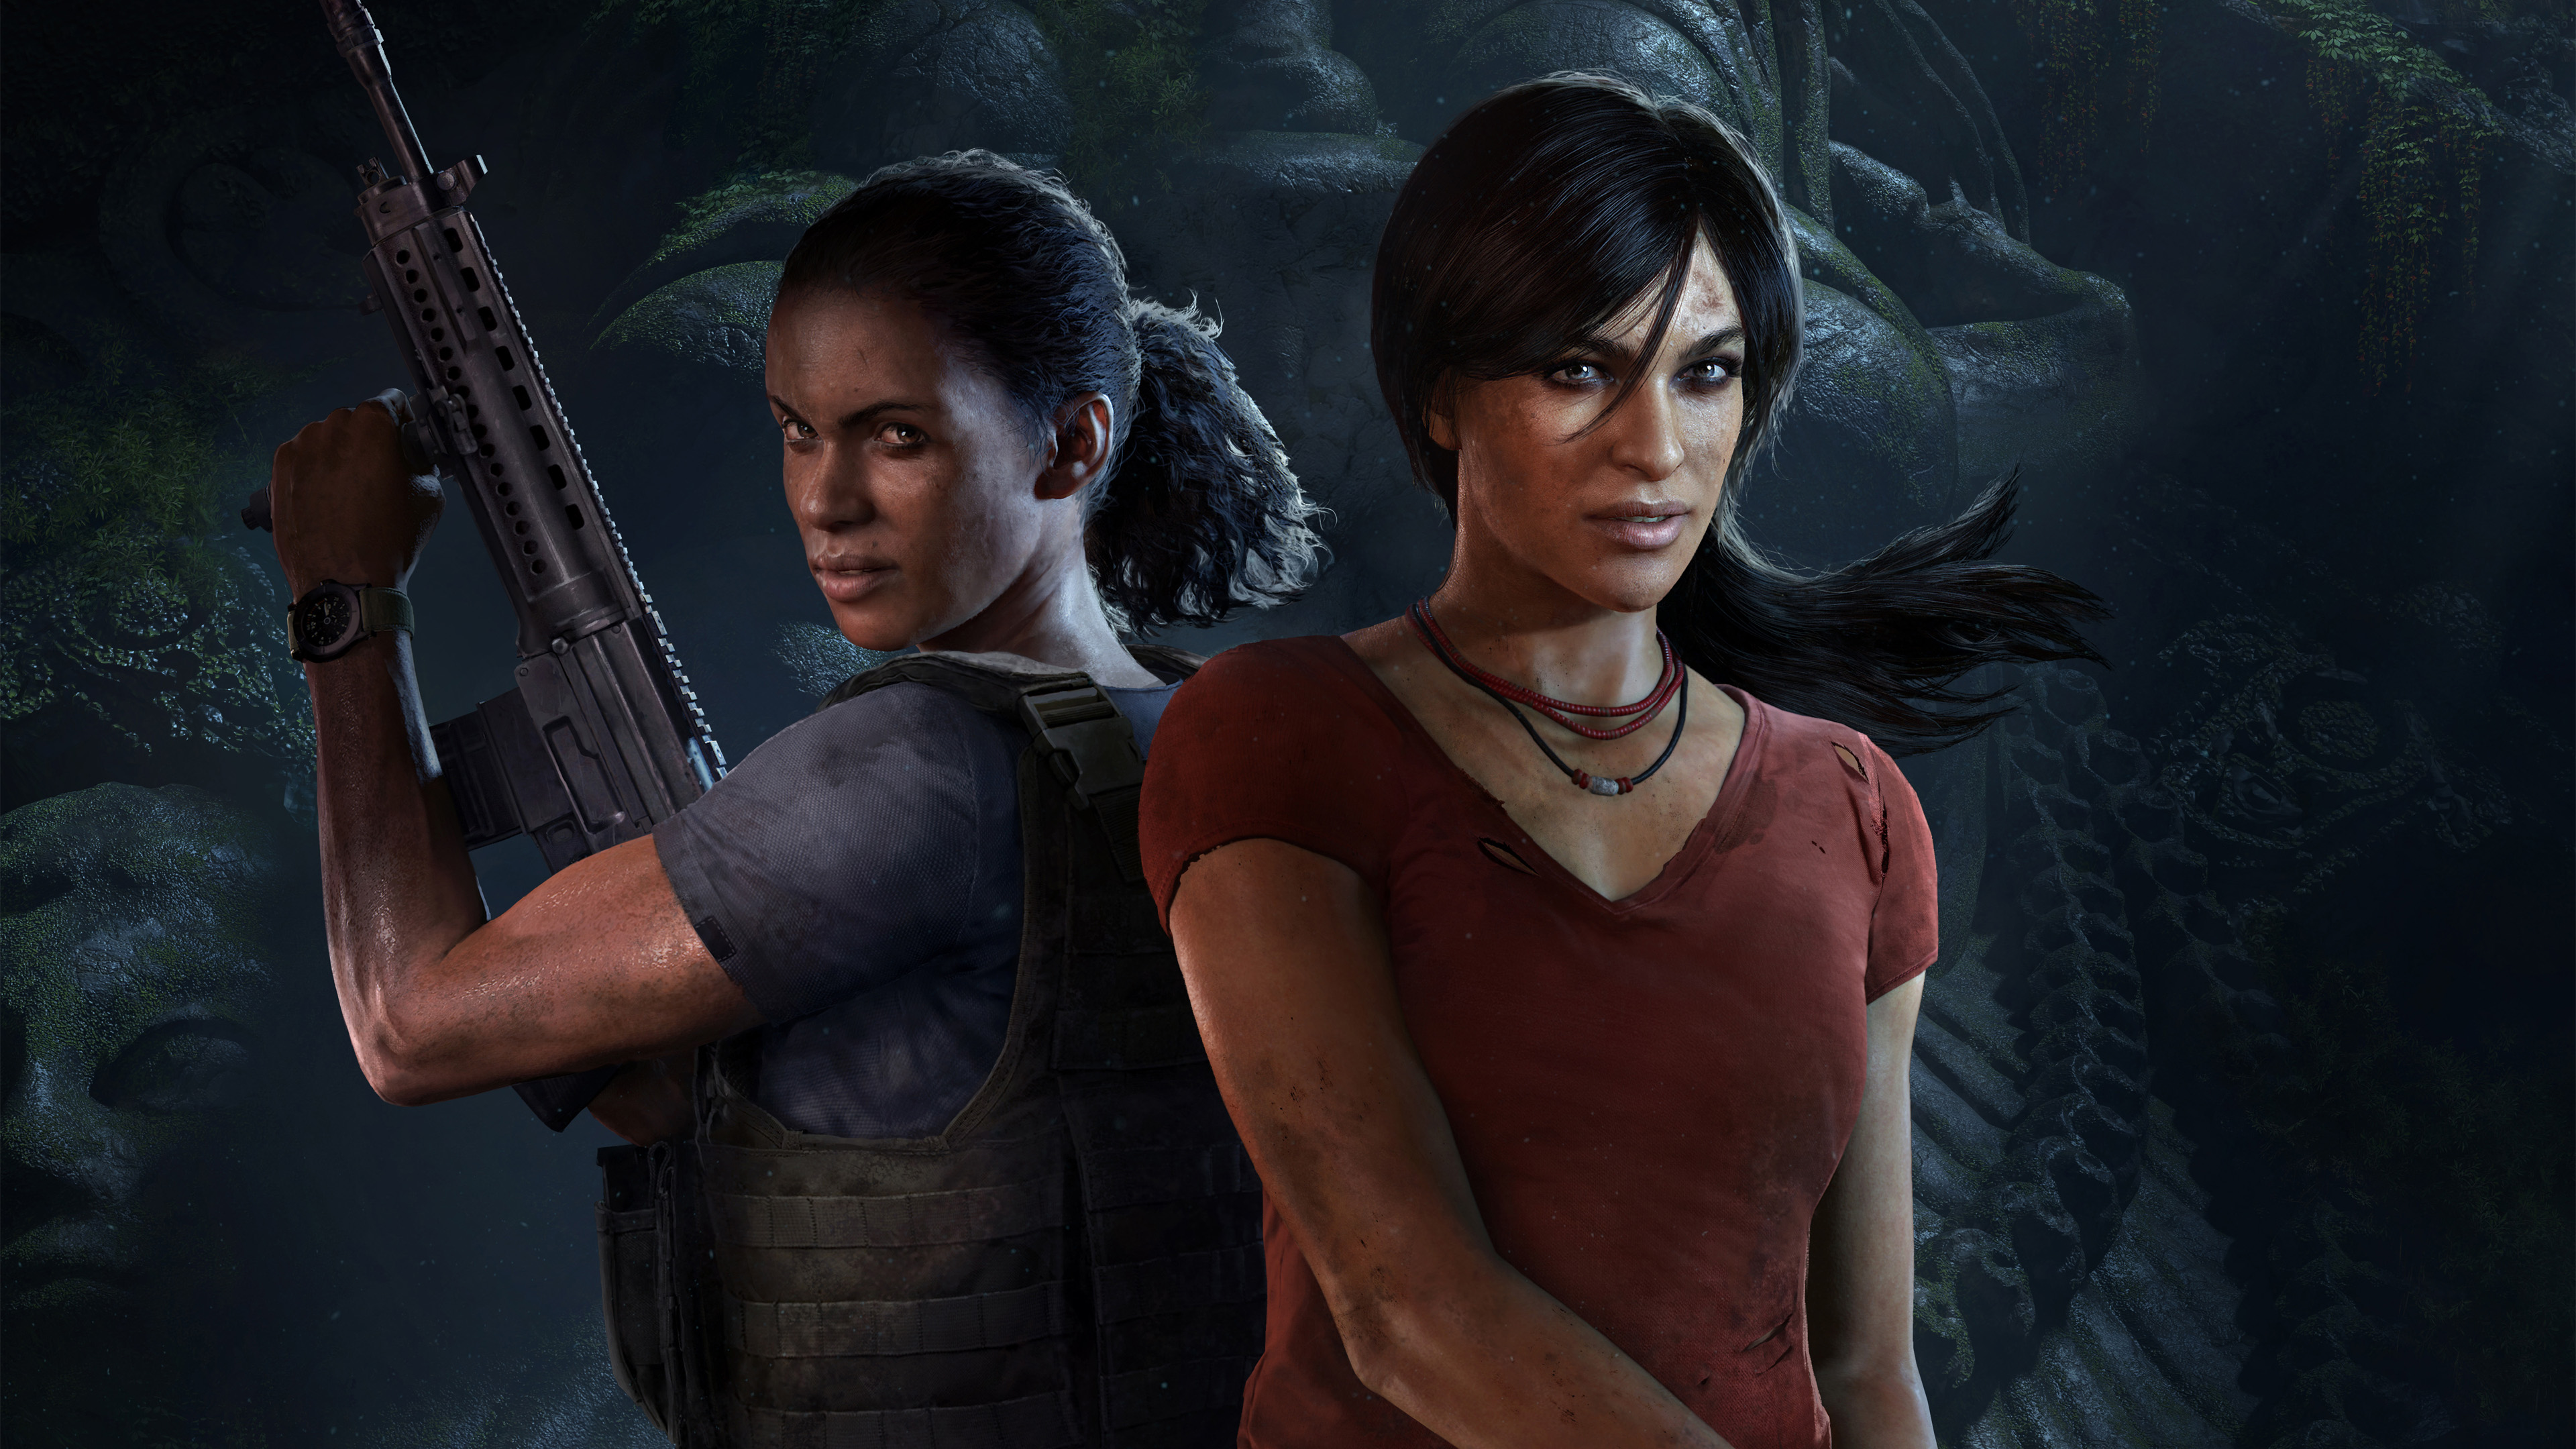 2932x2932 Pubg Android Game 4k Ipad Pro Retina Display Hd: 2932x2932 Chloe And Nadine Uncharted The Lost Legacy Ipad